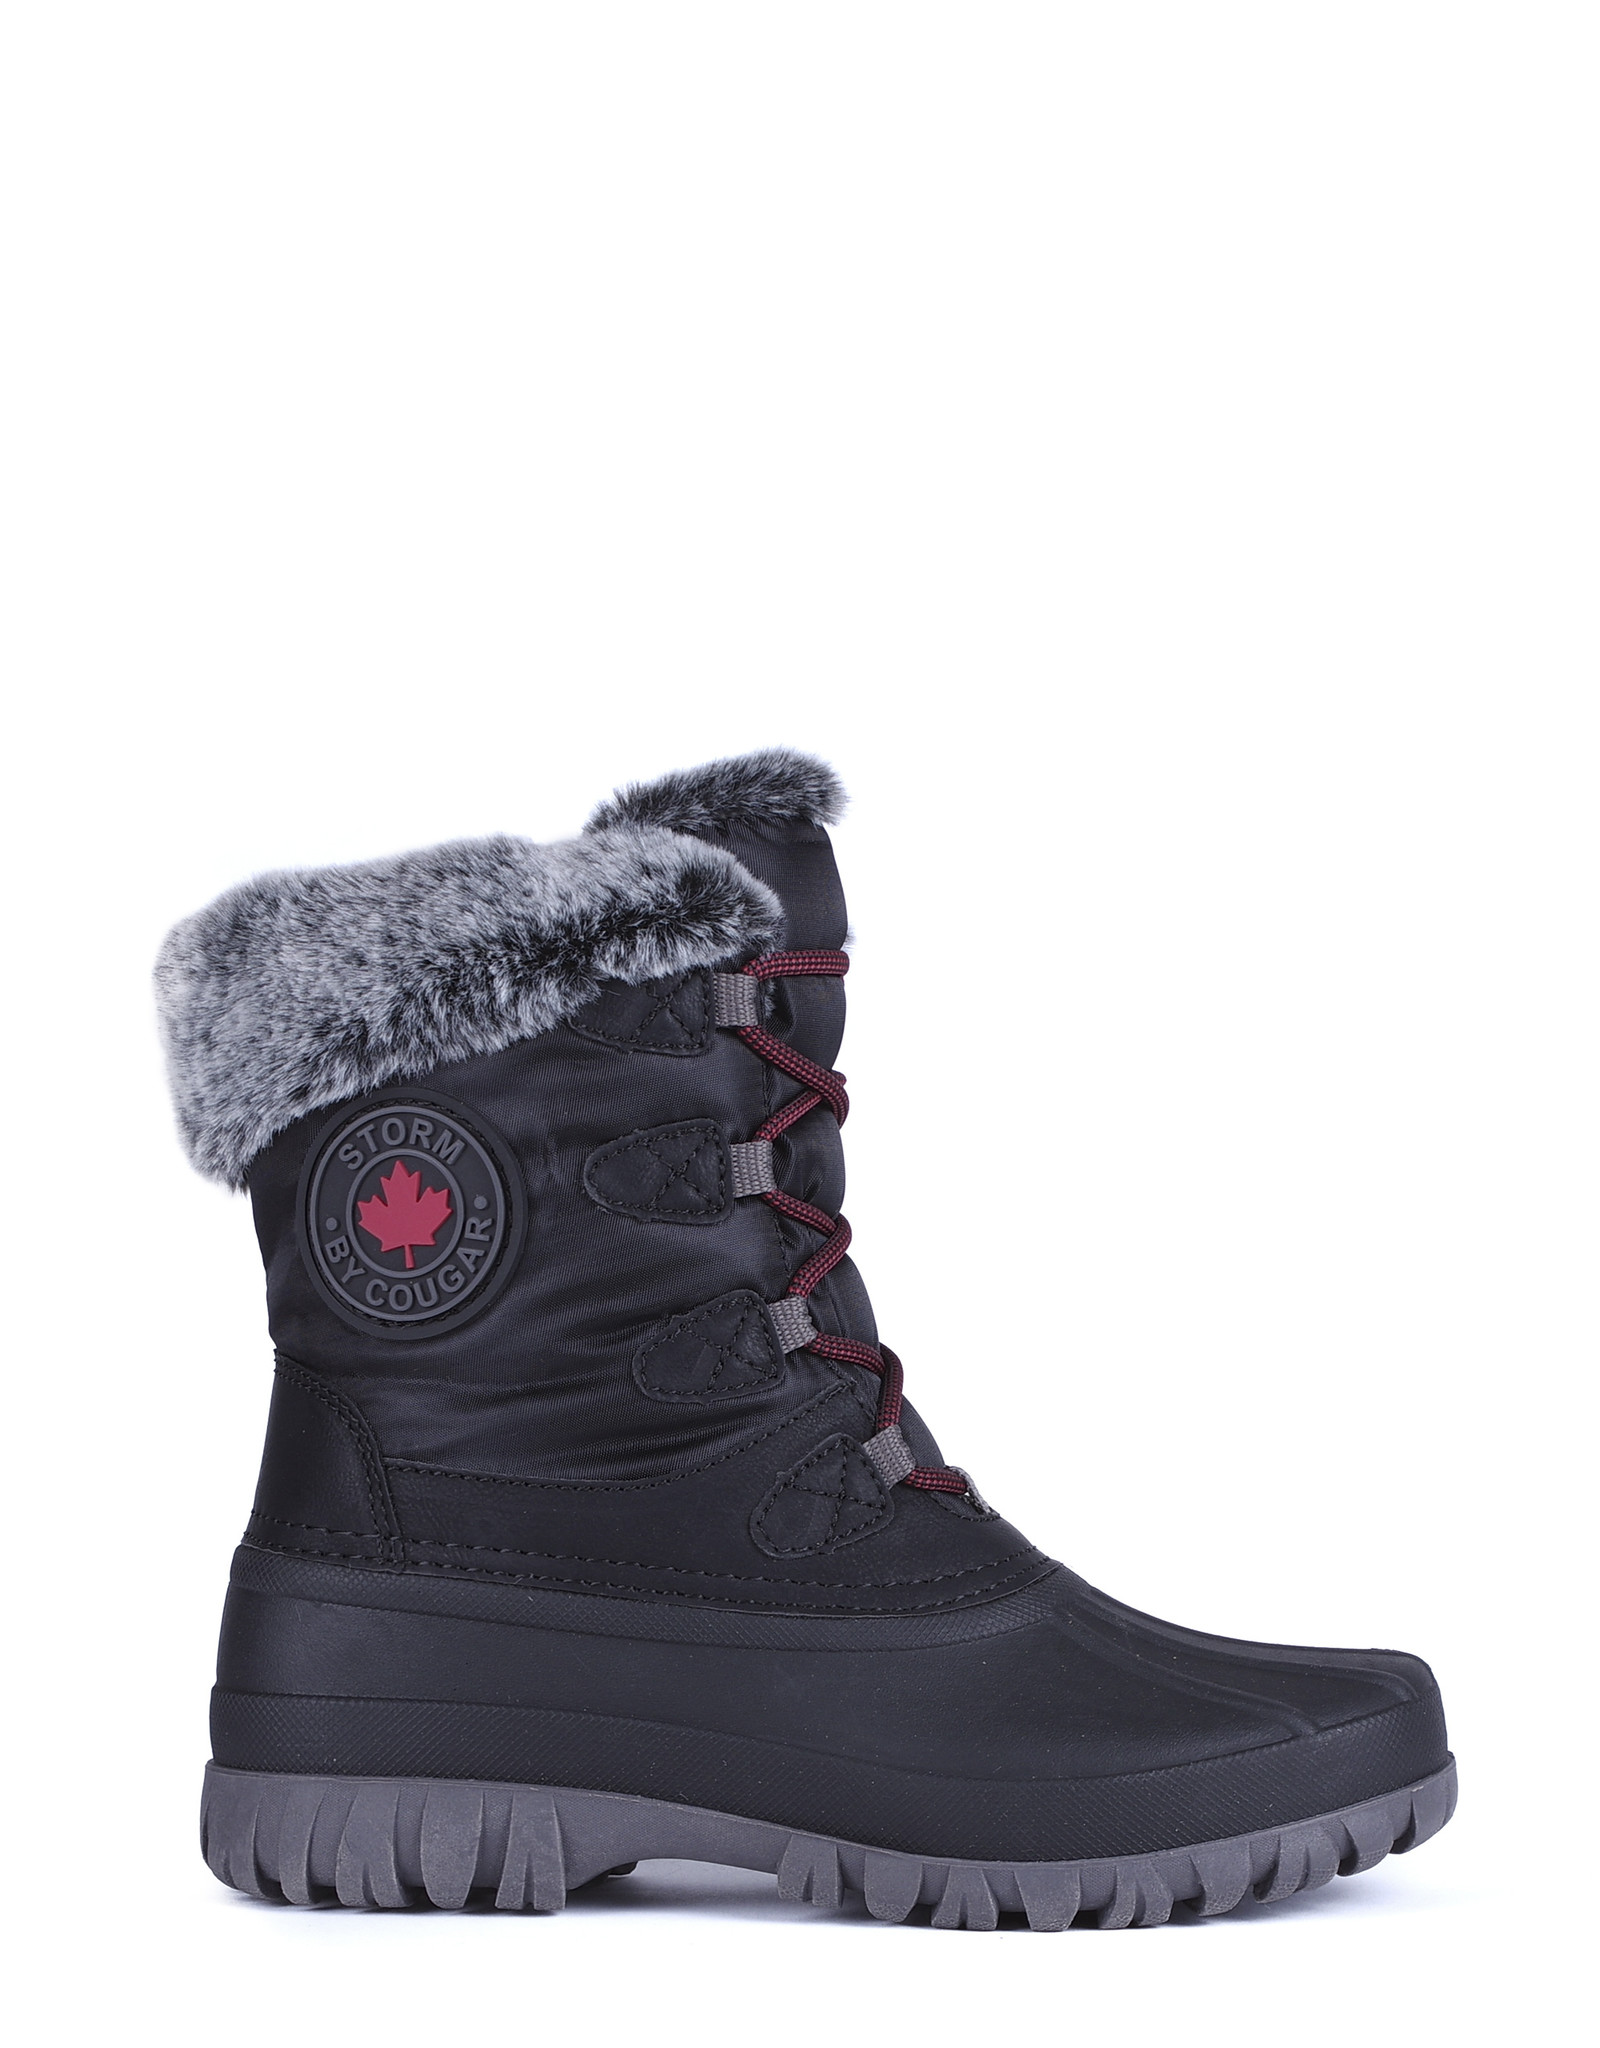 COUGAR COUGAR CABOT SNOW BOOT